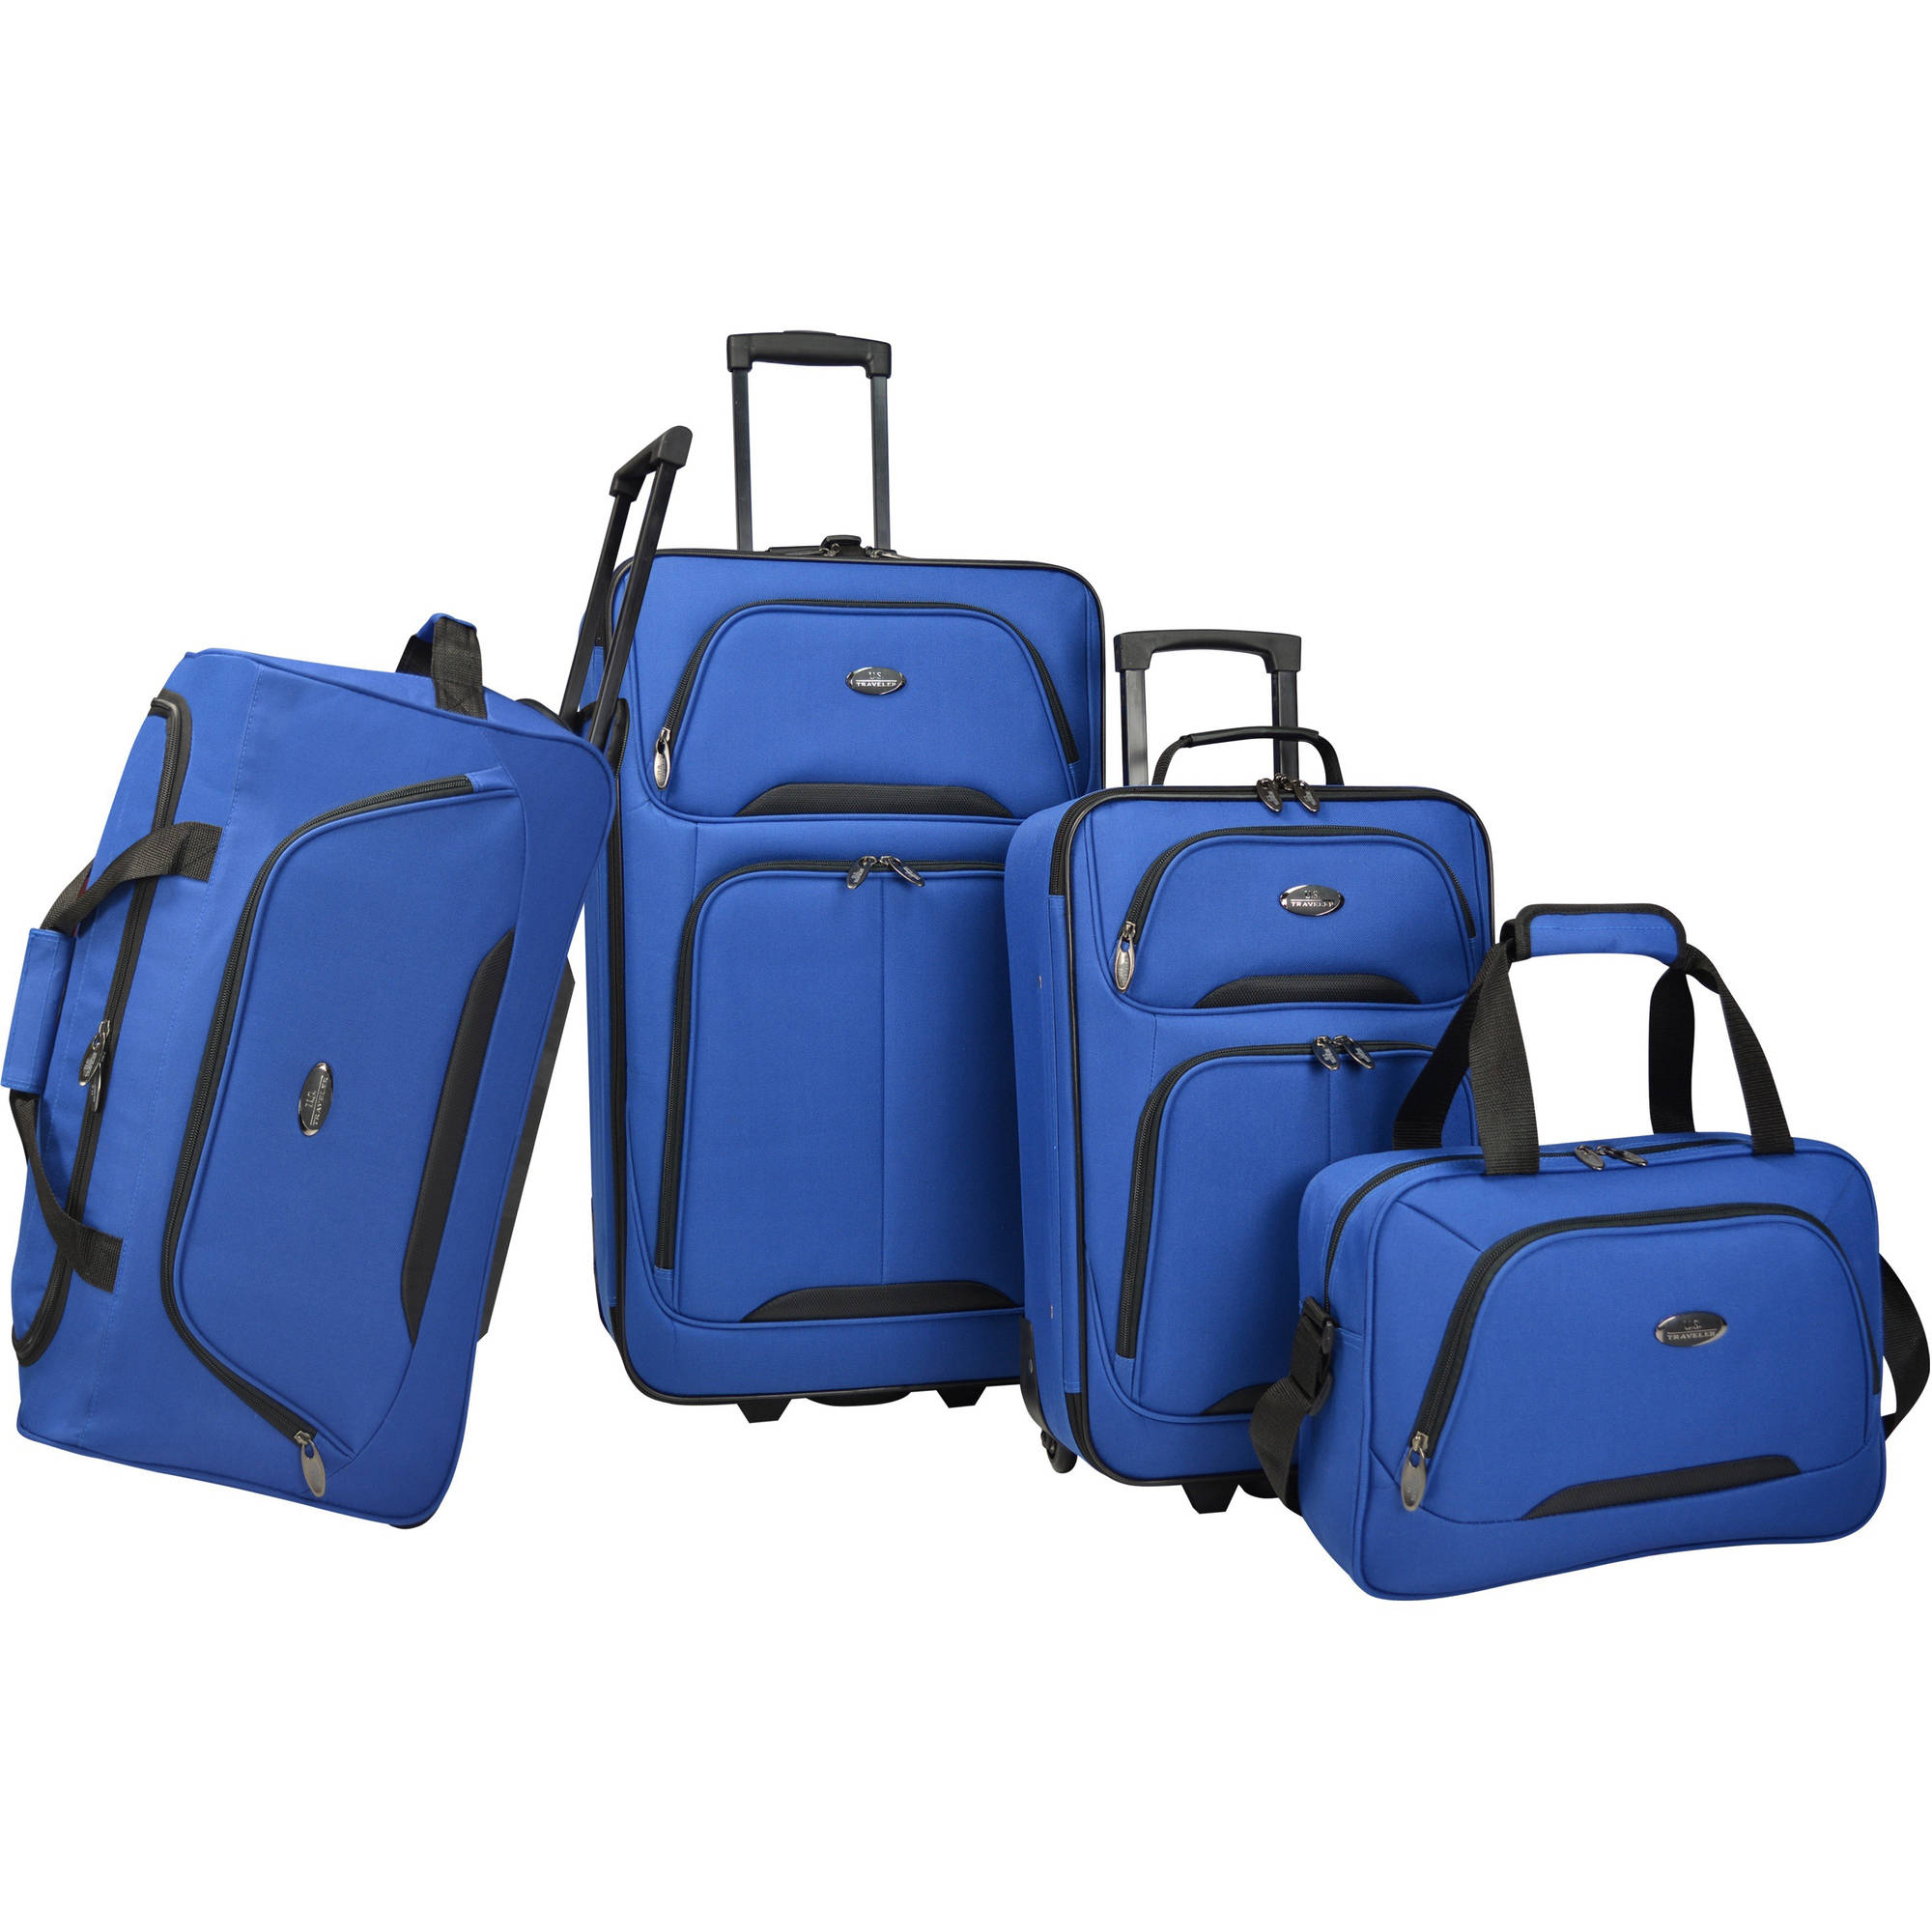 U.S. Traveler Vineyard 4-Piece Soft-Side Luggage Set